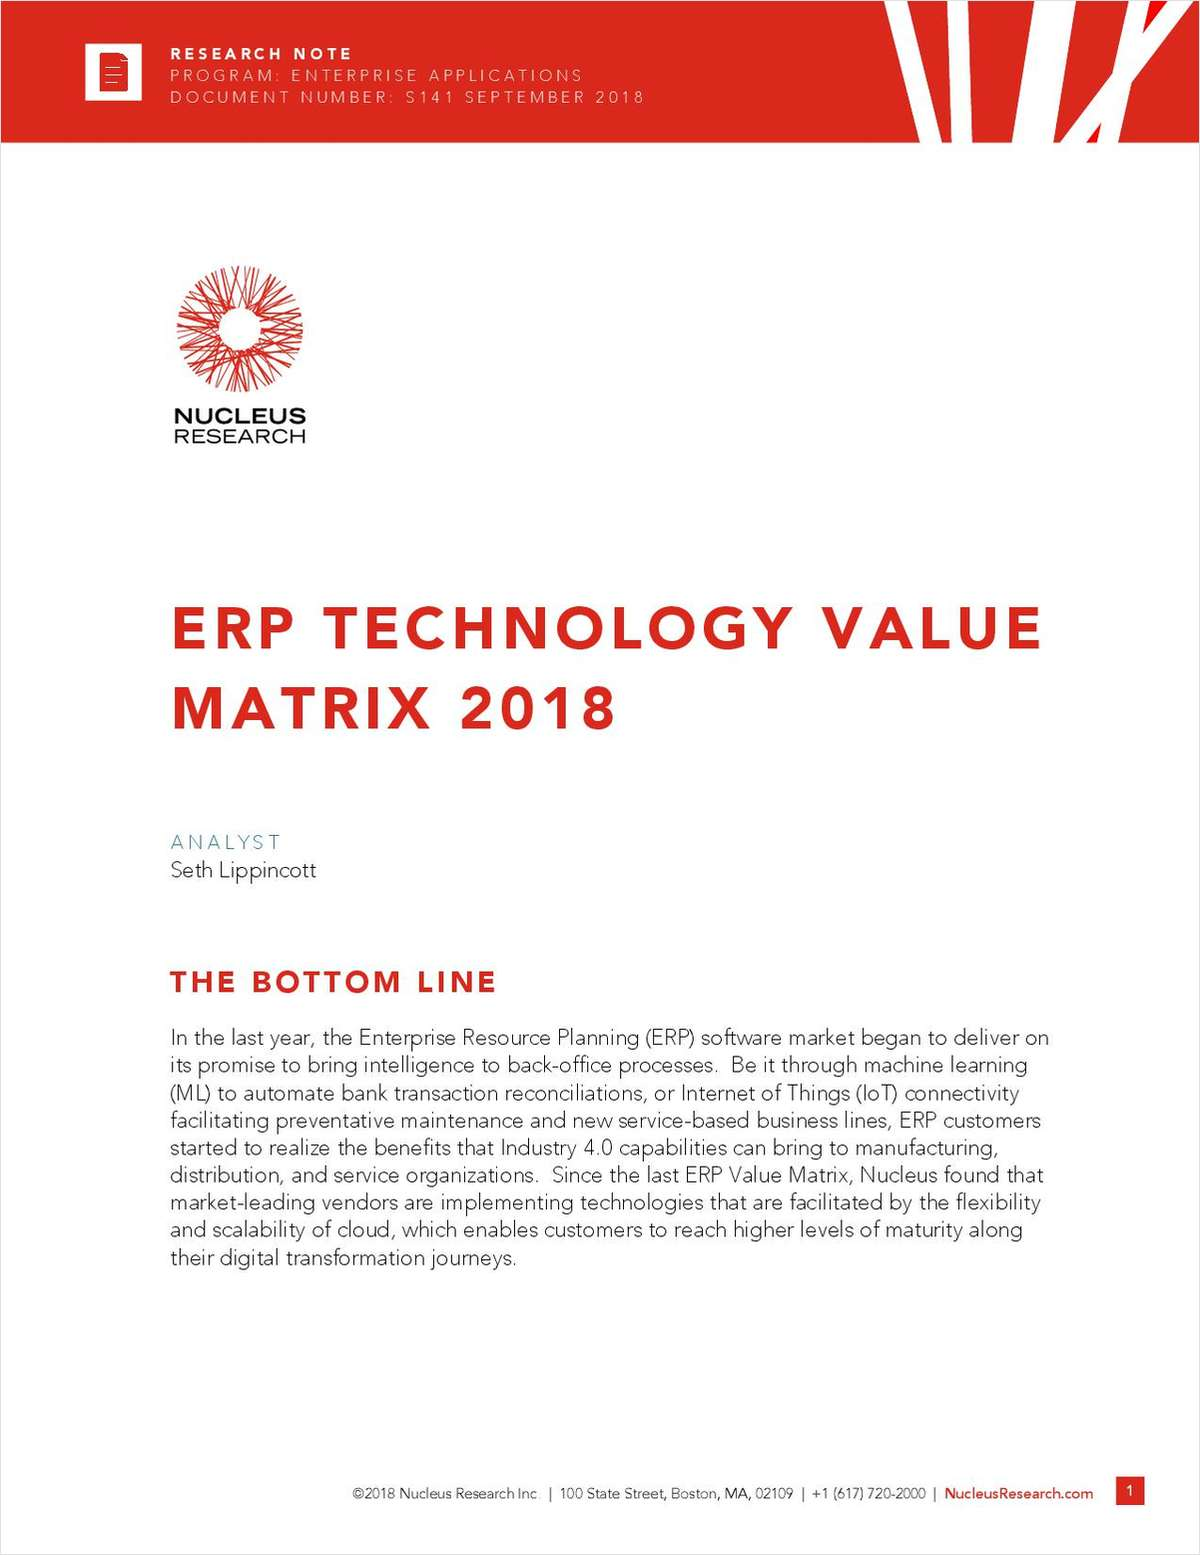 SAP Is a Leader in the 2018 ERP Value Matrix